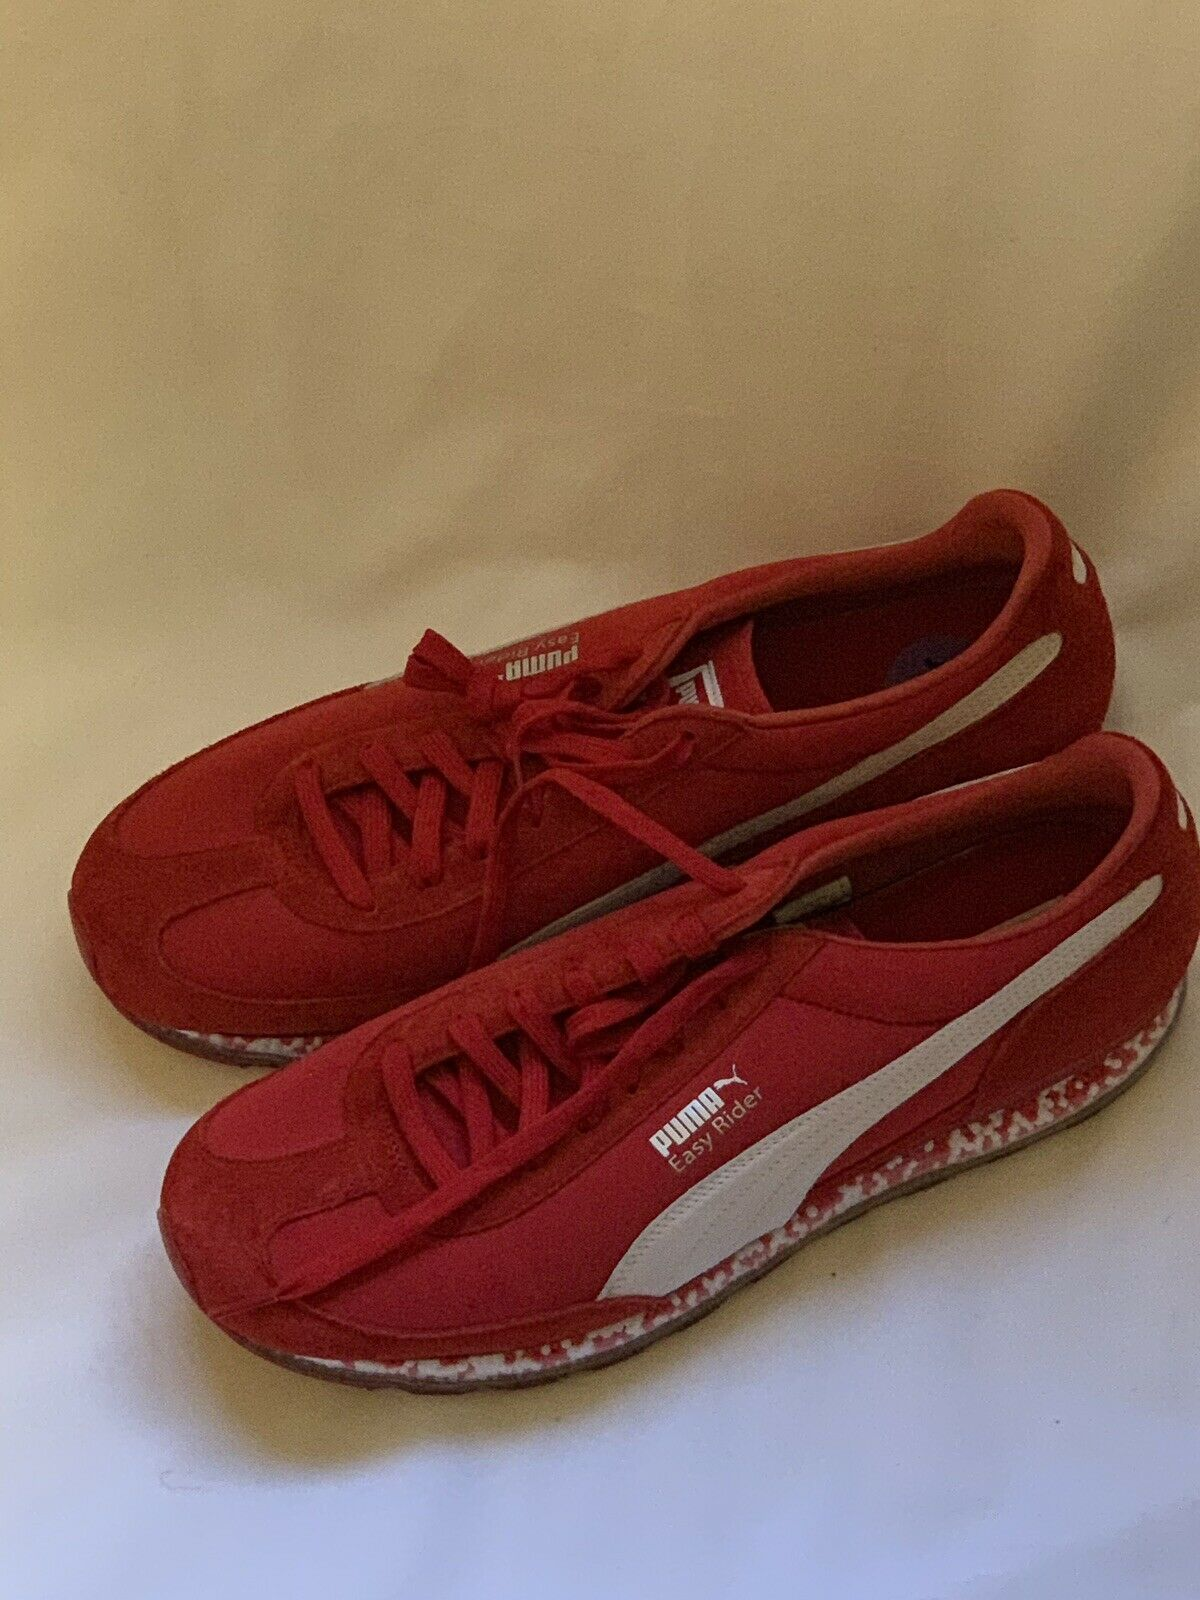 PUMA JAMMING EASY RIDER 367832 03  RED. Size 14